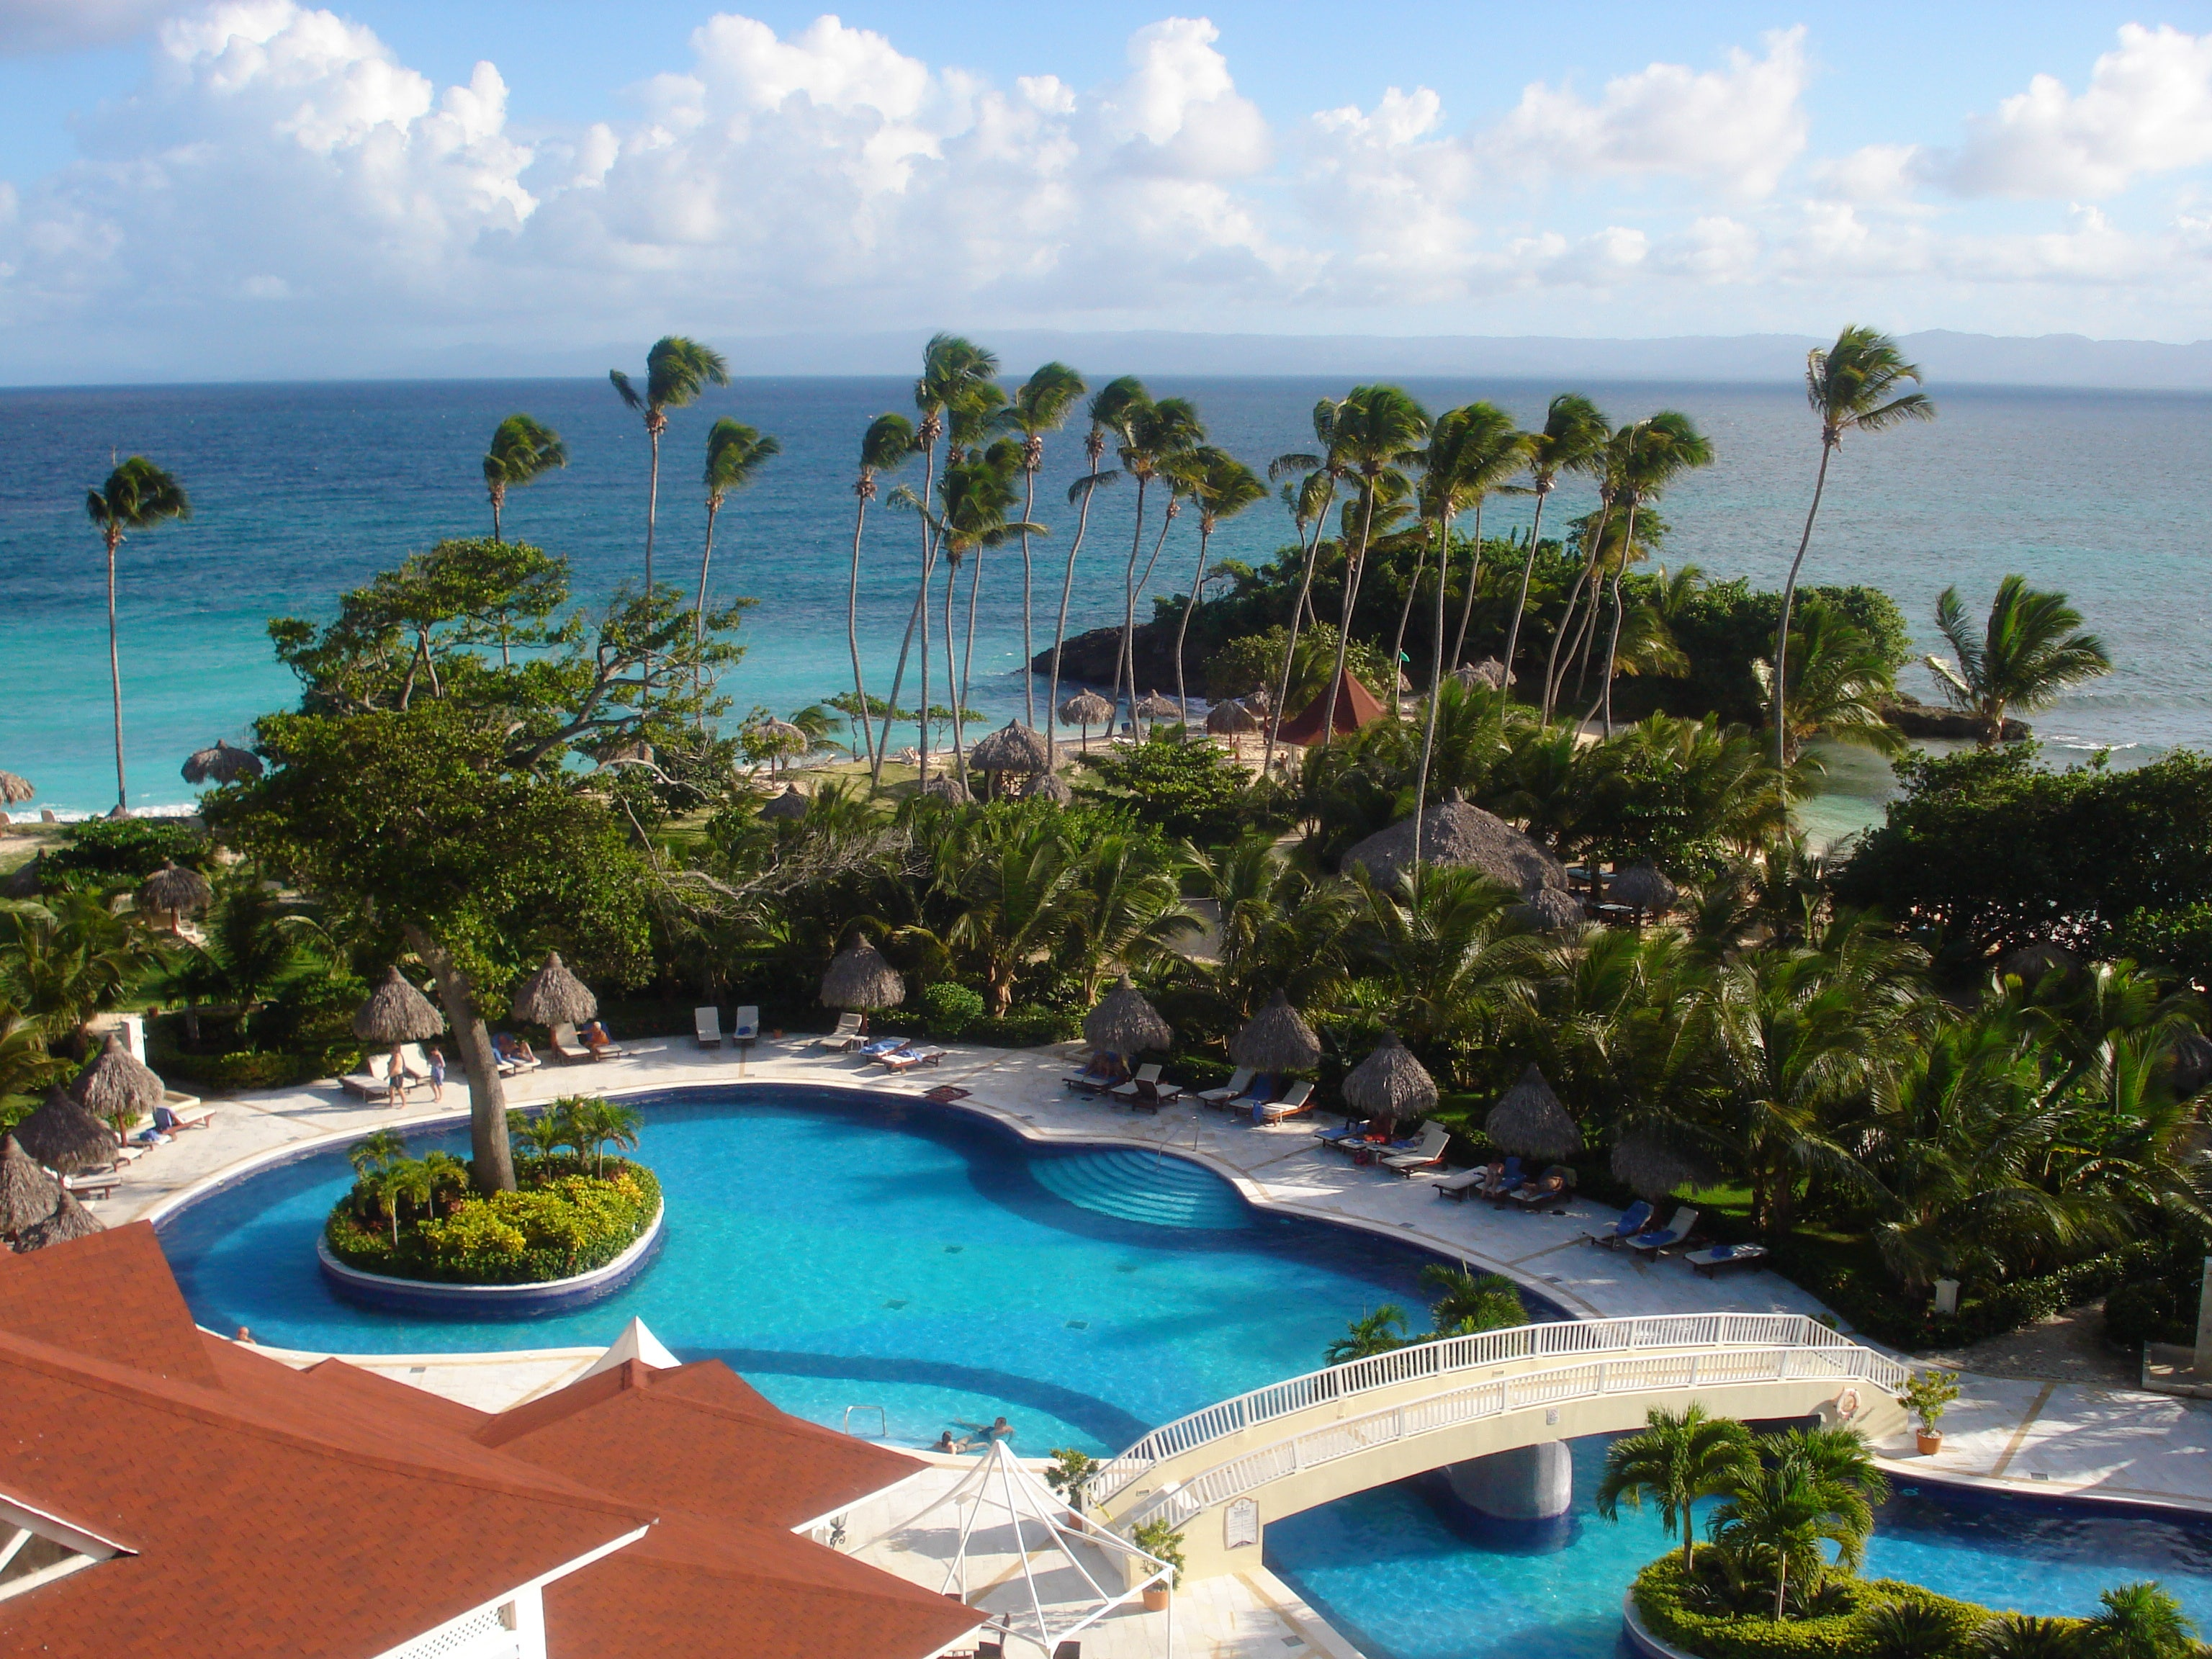 Best All Inclusive Caribbean Resorts According To